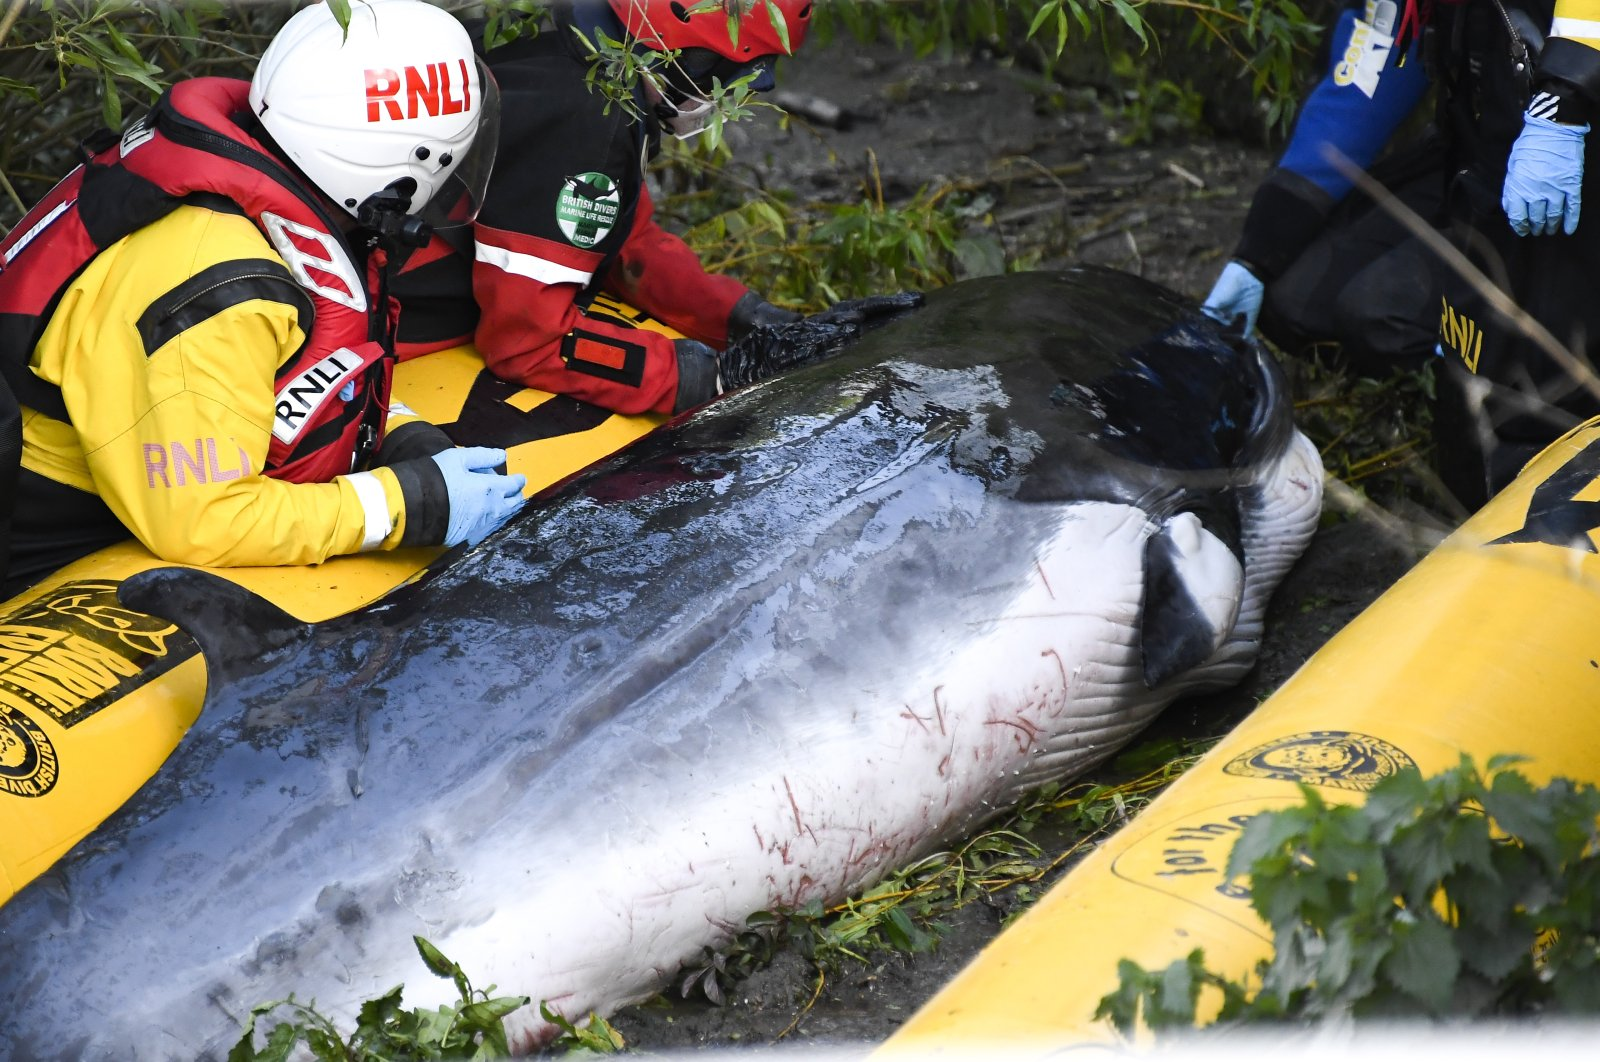 Lifeboat workers attempt to assist a stranded young Minke whale on the River Thames near Teddington Lock, in London, U.K., May 10, 2021. (AP Photo)